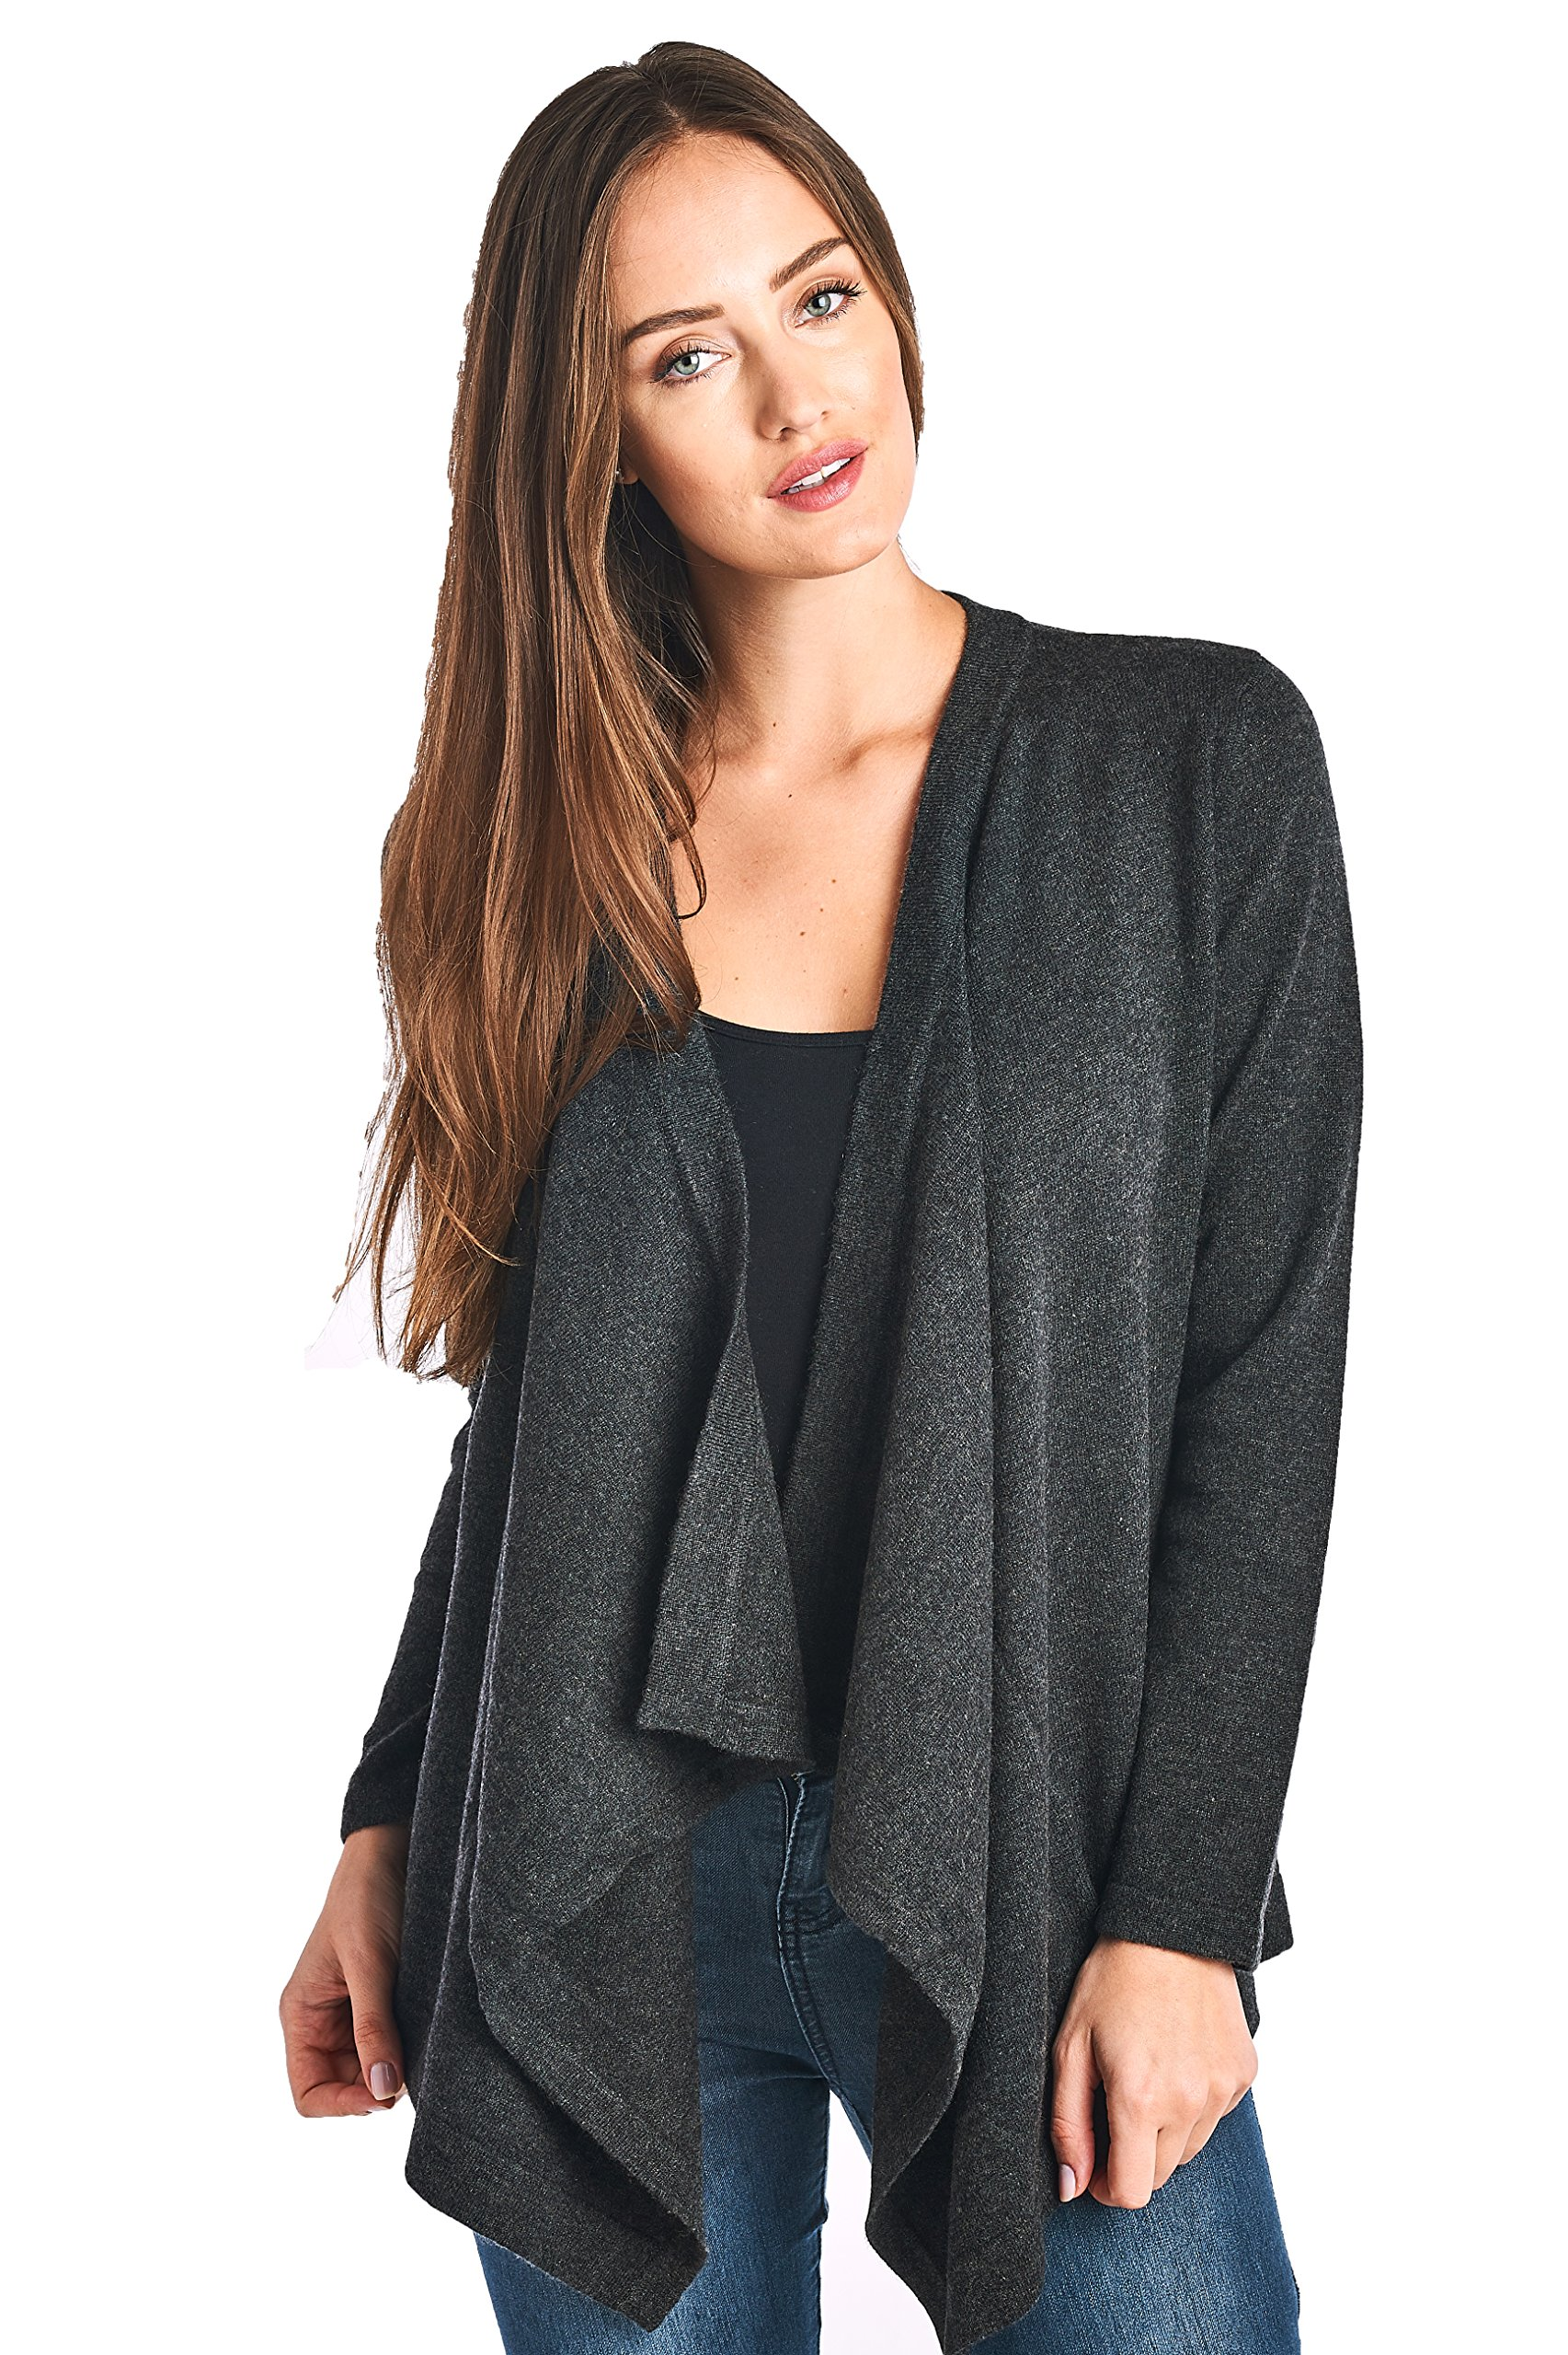 High Style Women's 100% Cashmere Long Sleeve Drape Front Asym Hem Open Cardigan Sweater (17619, Charcoal, M)